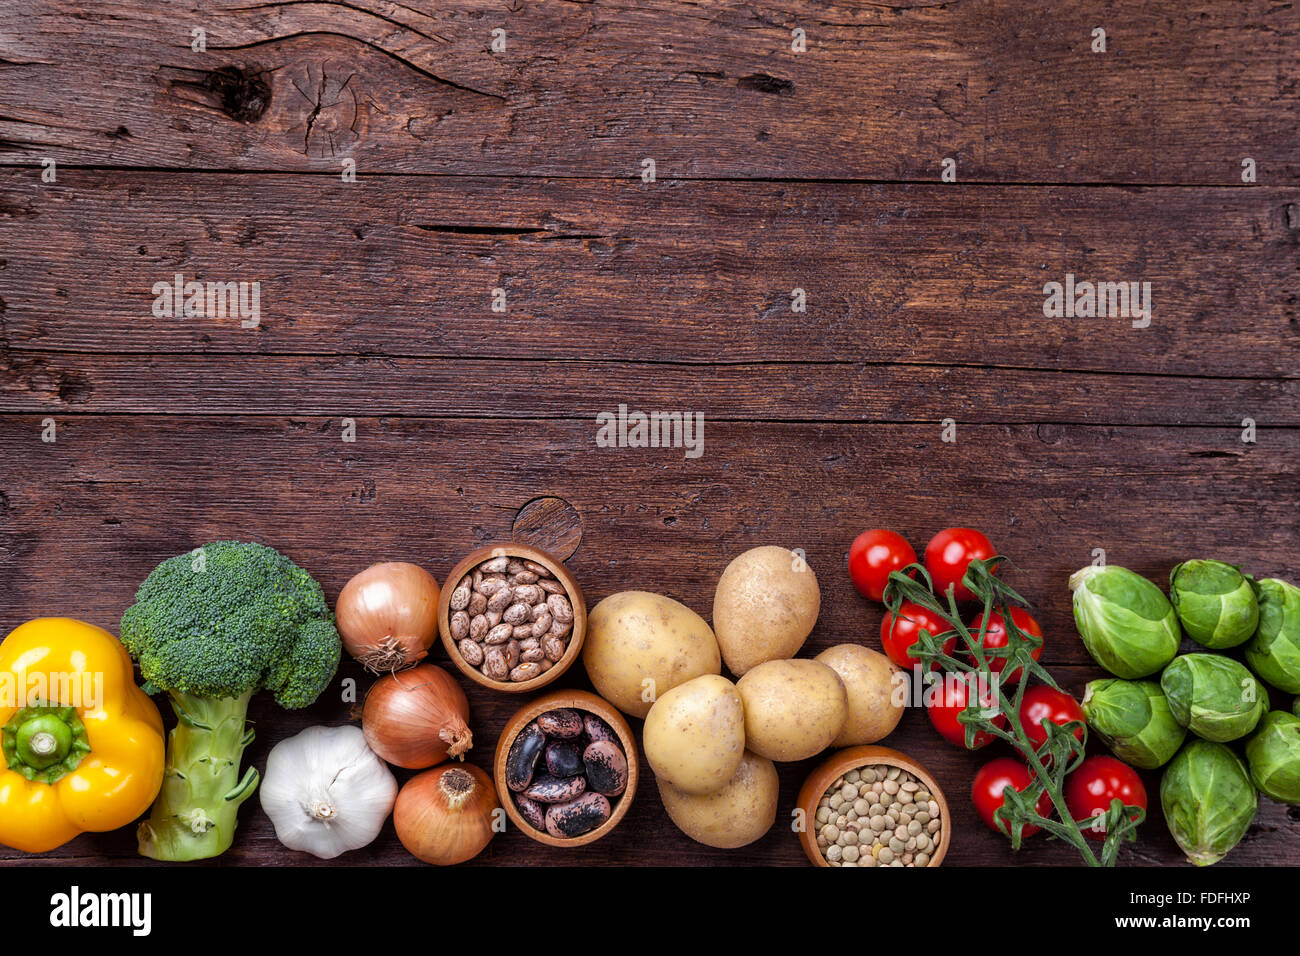 Fresh and healthy organic vegetables and food ingredients on wooden background - Stock Image